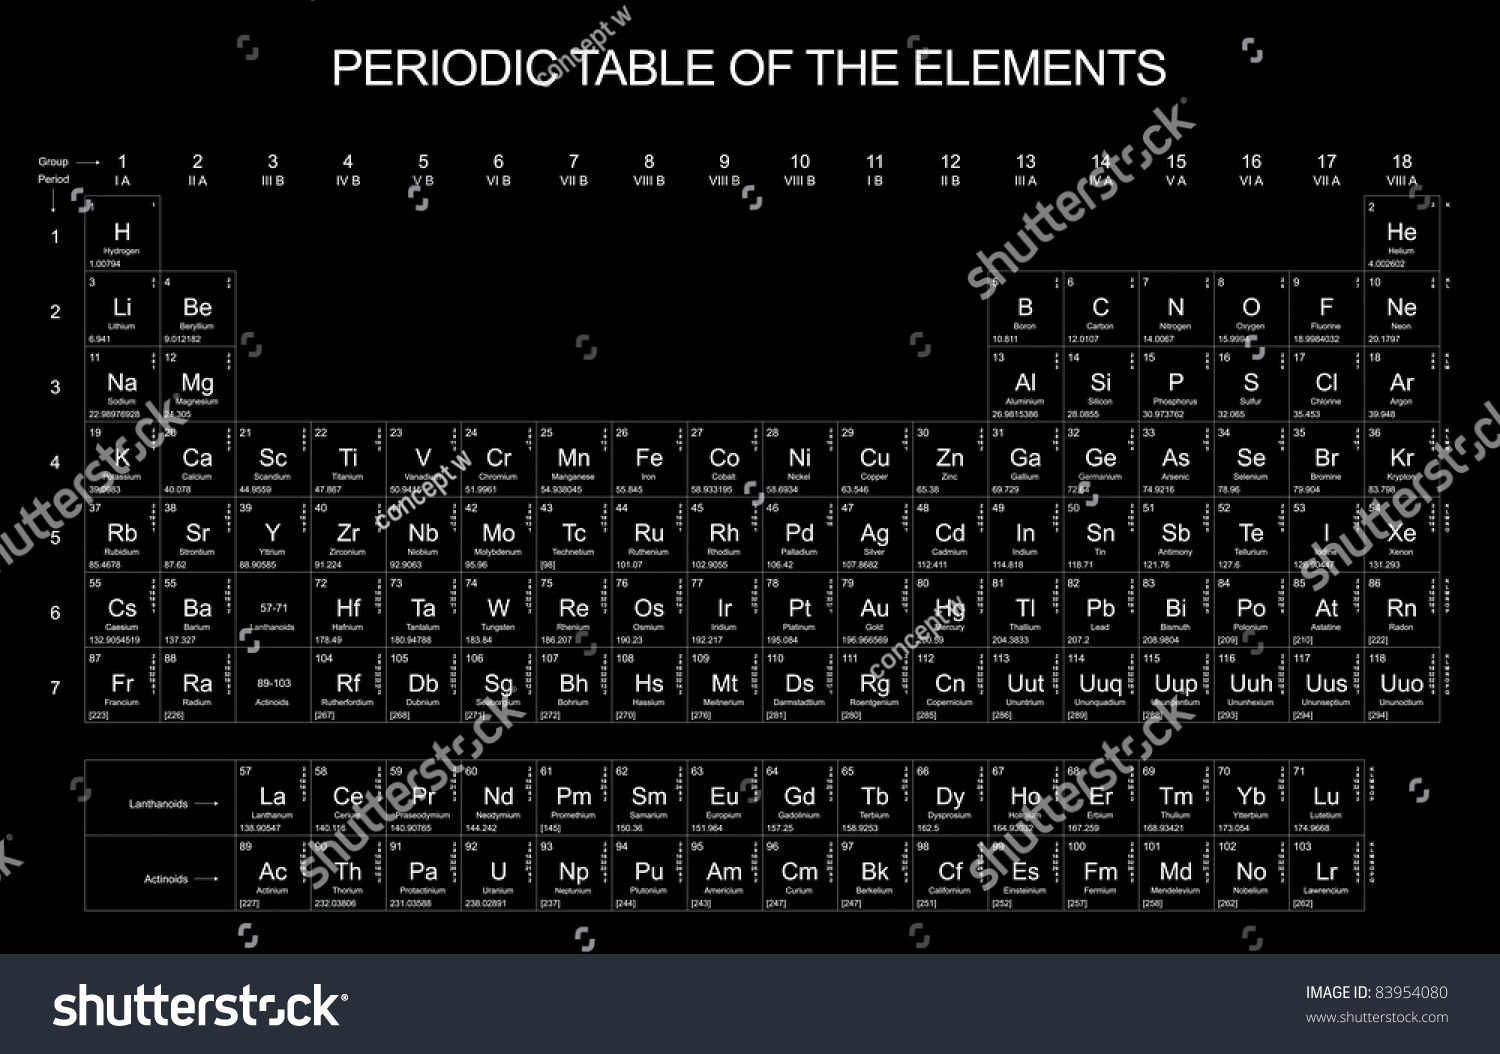 Periodic table elements on black background stock illustration periodic table of the elements on black background gamestrikefo Gallery